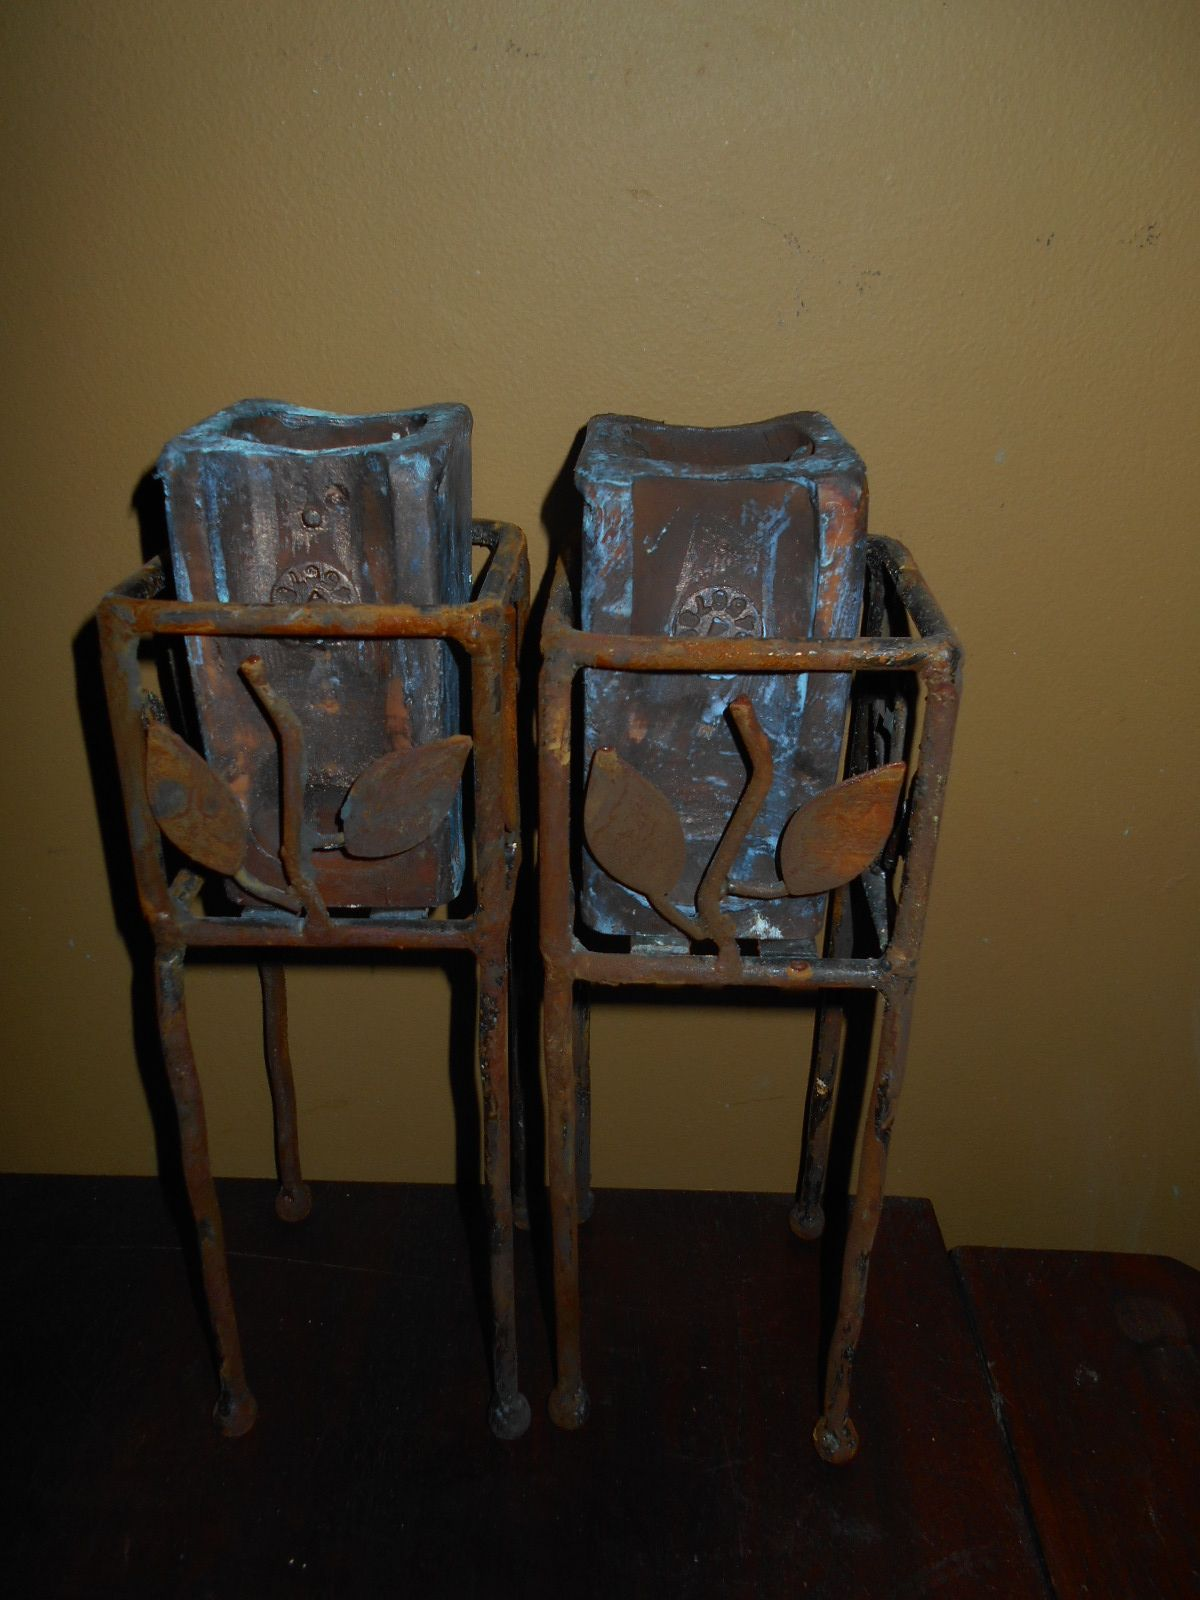 Industrial candleholders made from old stands and old auto parts...